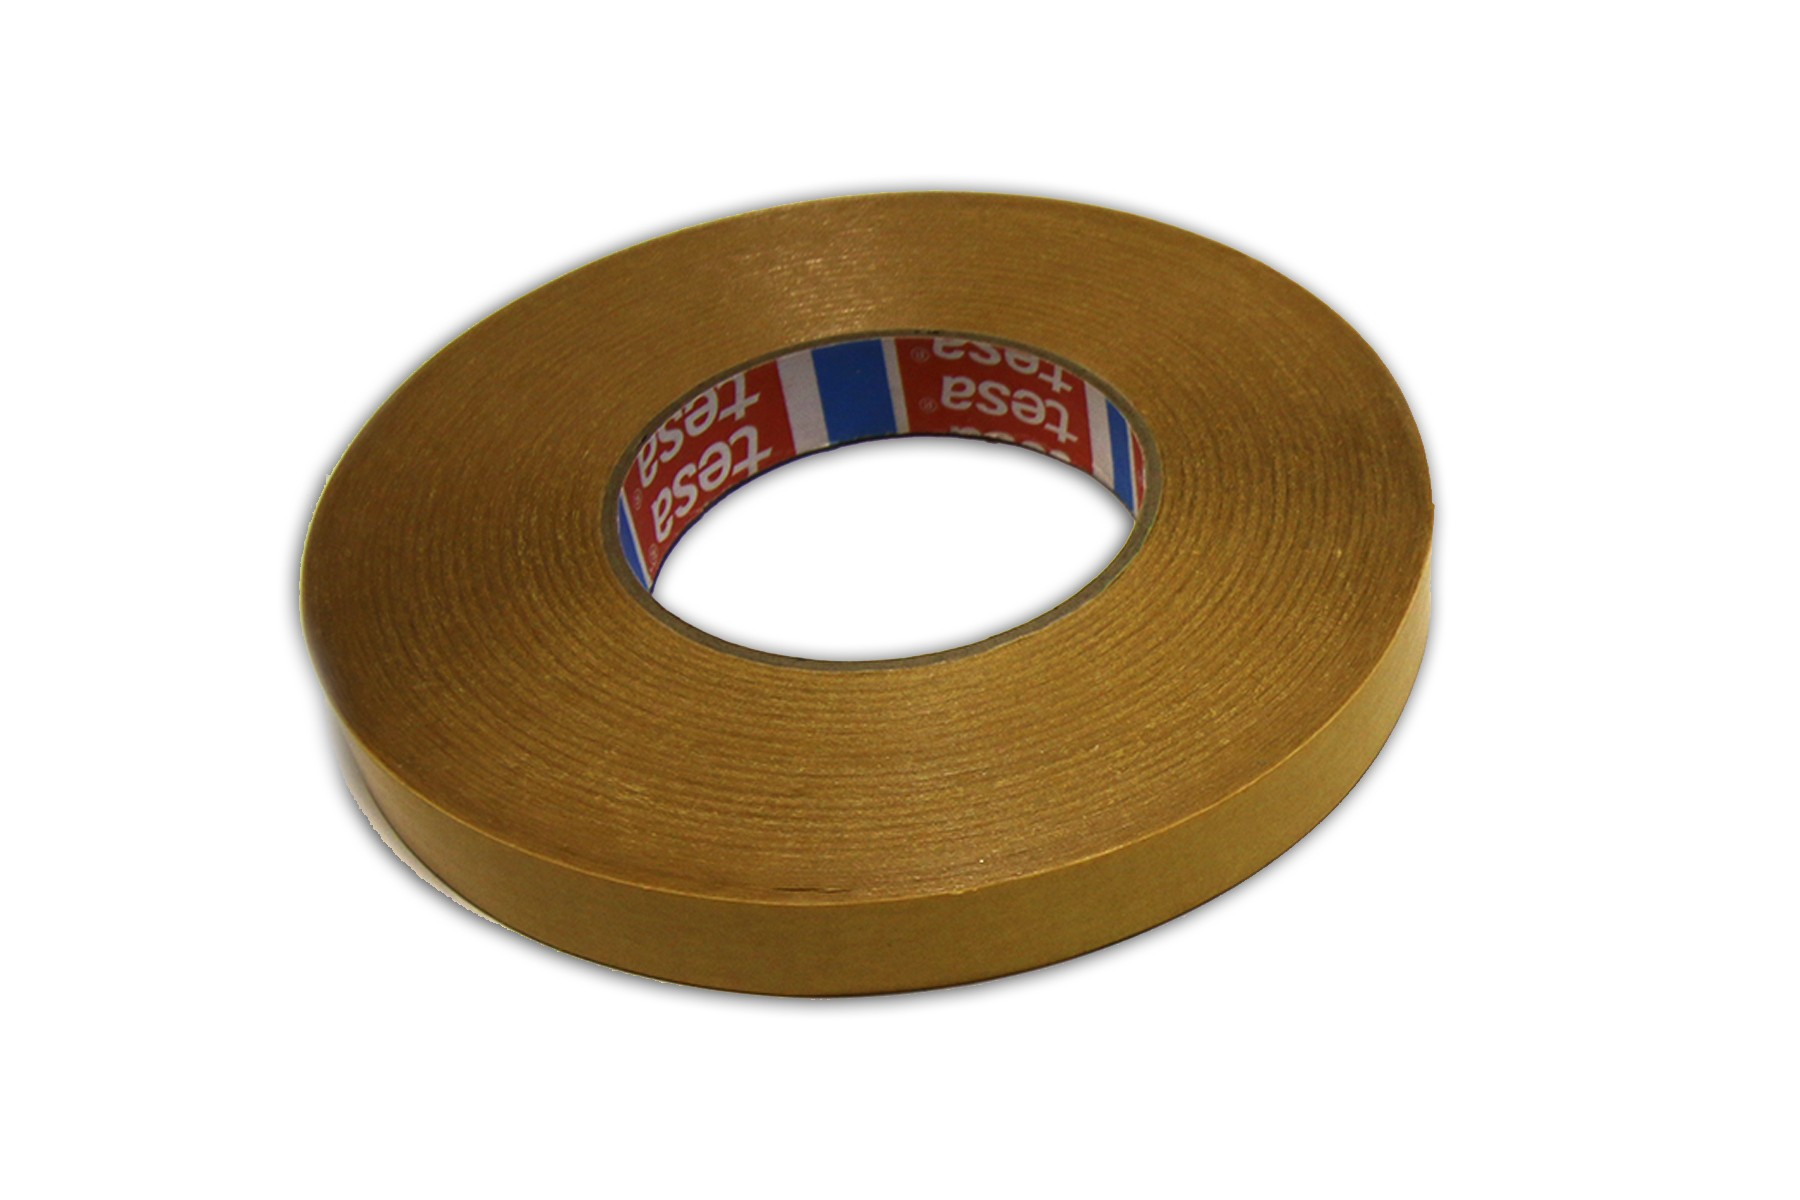 "Tesa Double Sided Application Tape, 3/4"" x 60 yd"